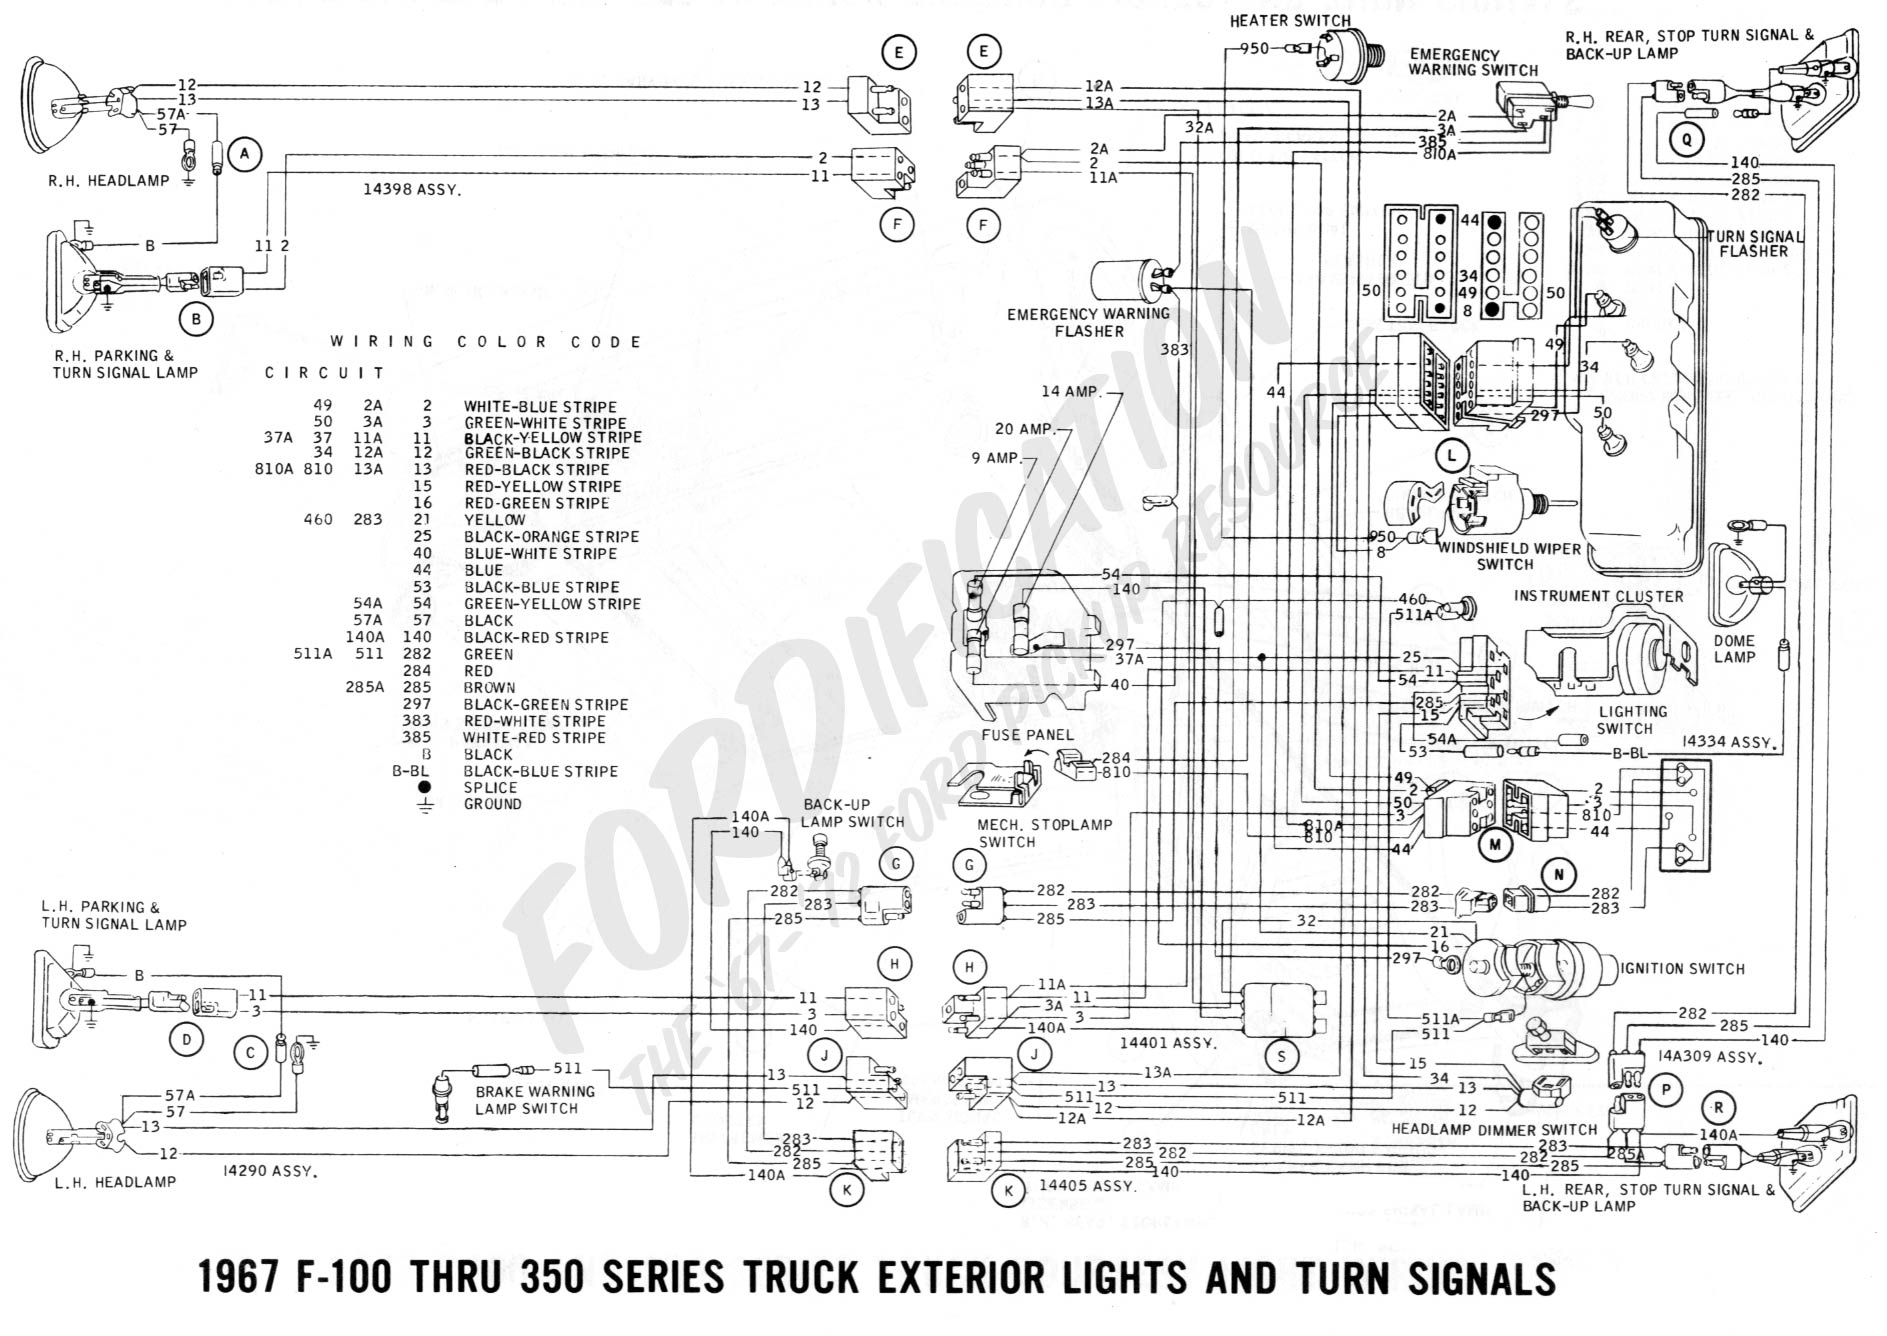 2006 explorer dvd wiring diagram